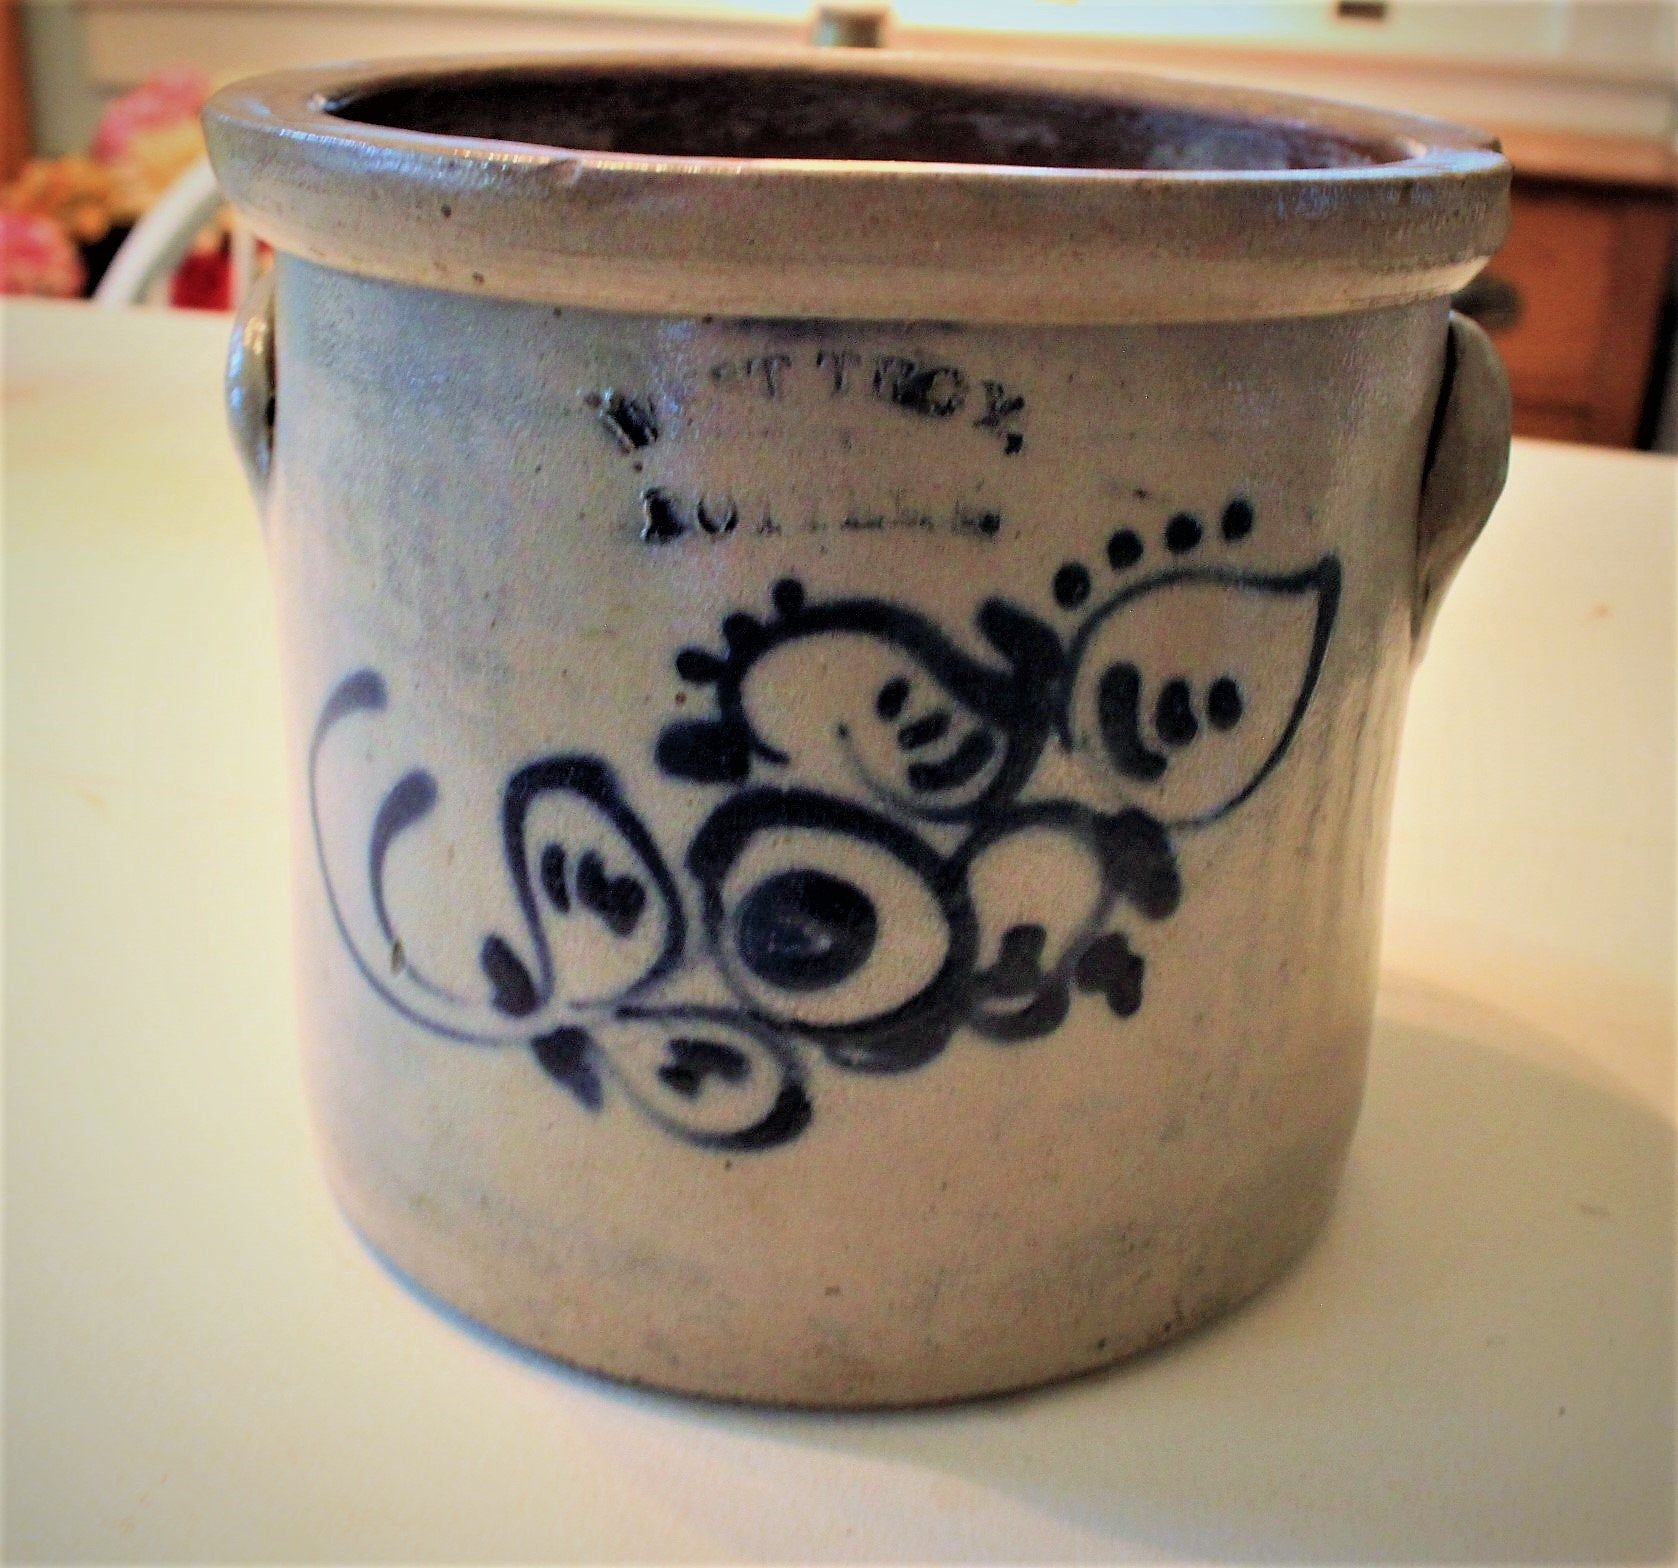 Antique West Troy Ny Crock One 1 Gallon Classic Collectors Late 1800 S Country Butter Crock Primitive Stoneware Butter Crock Crock Antique Crock